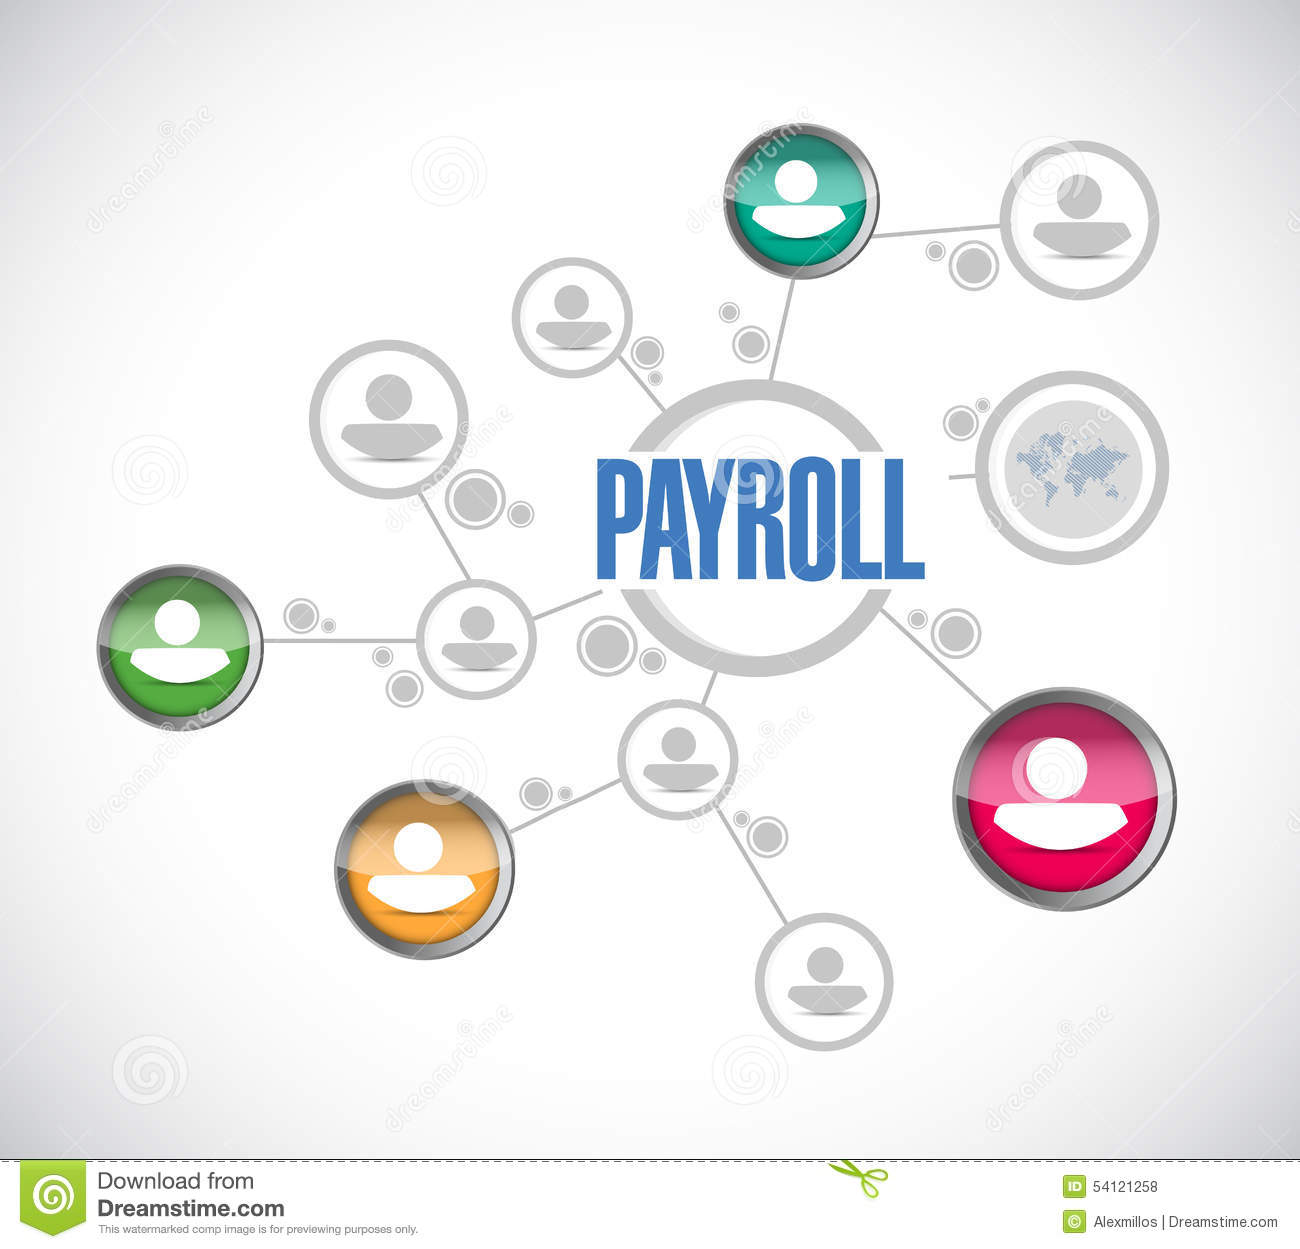 Payroll Network Sign Concept Illustration Stock Illustration - Image ...